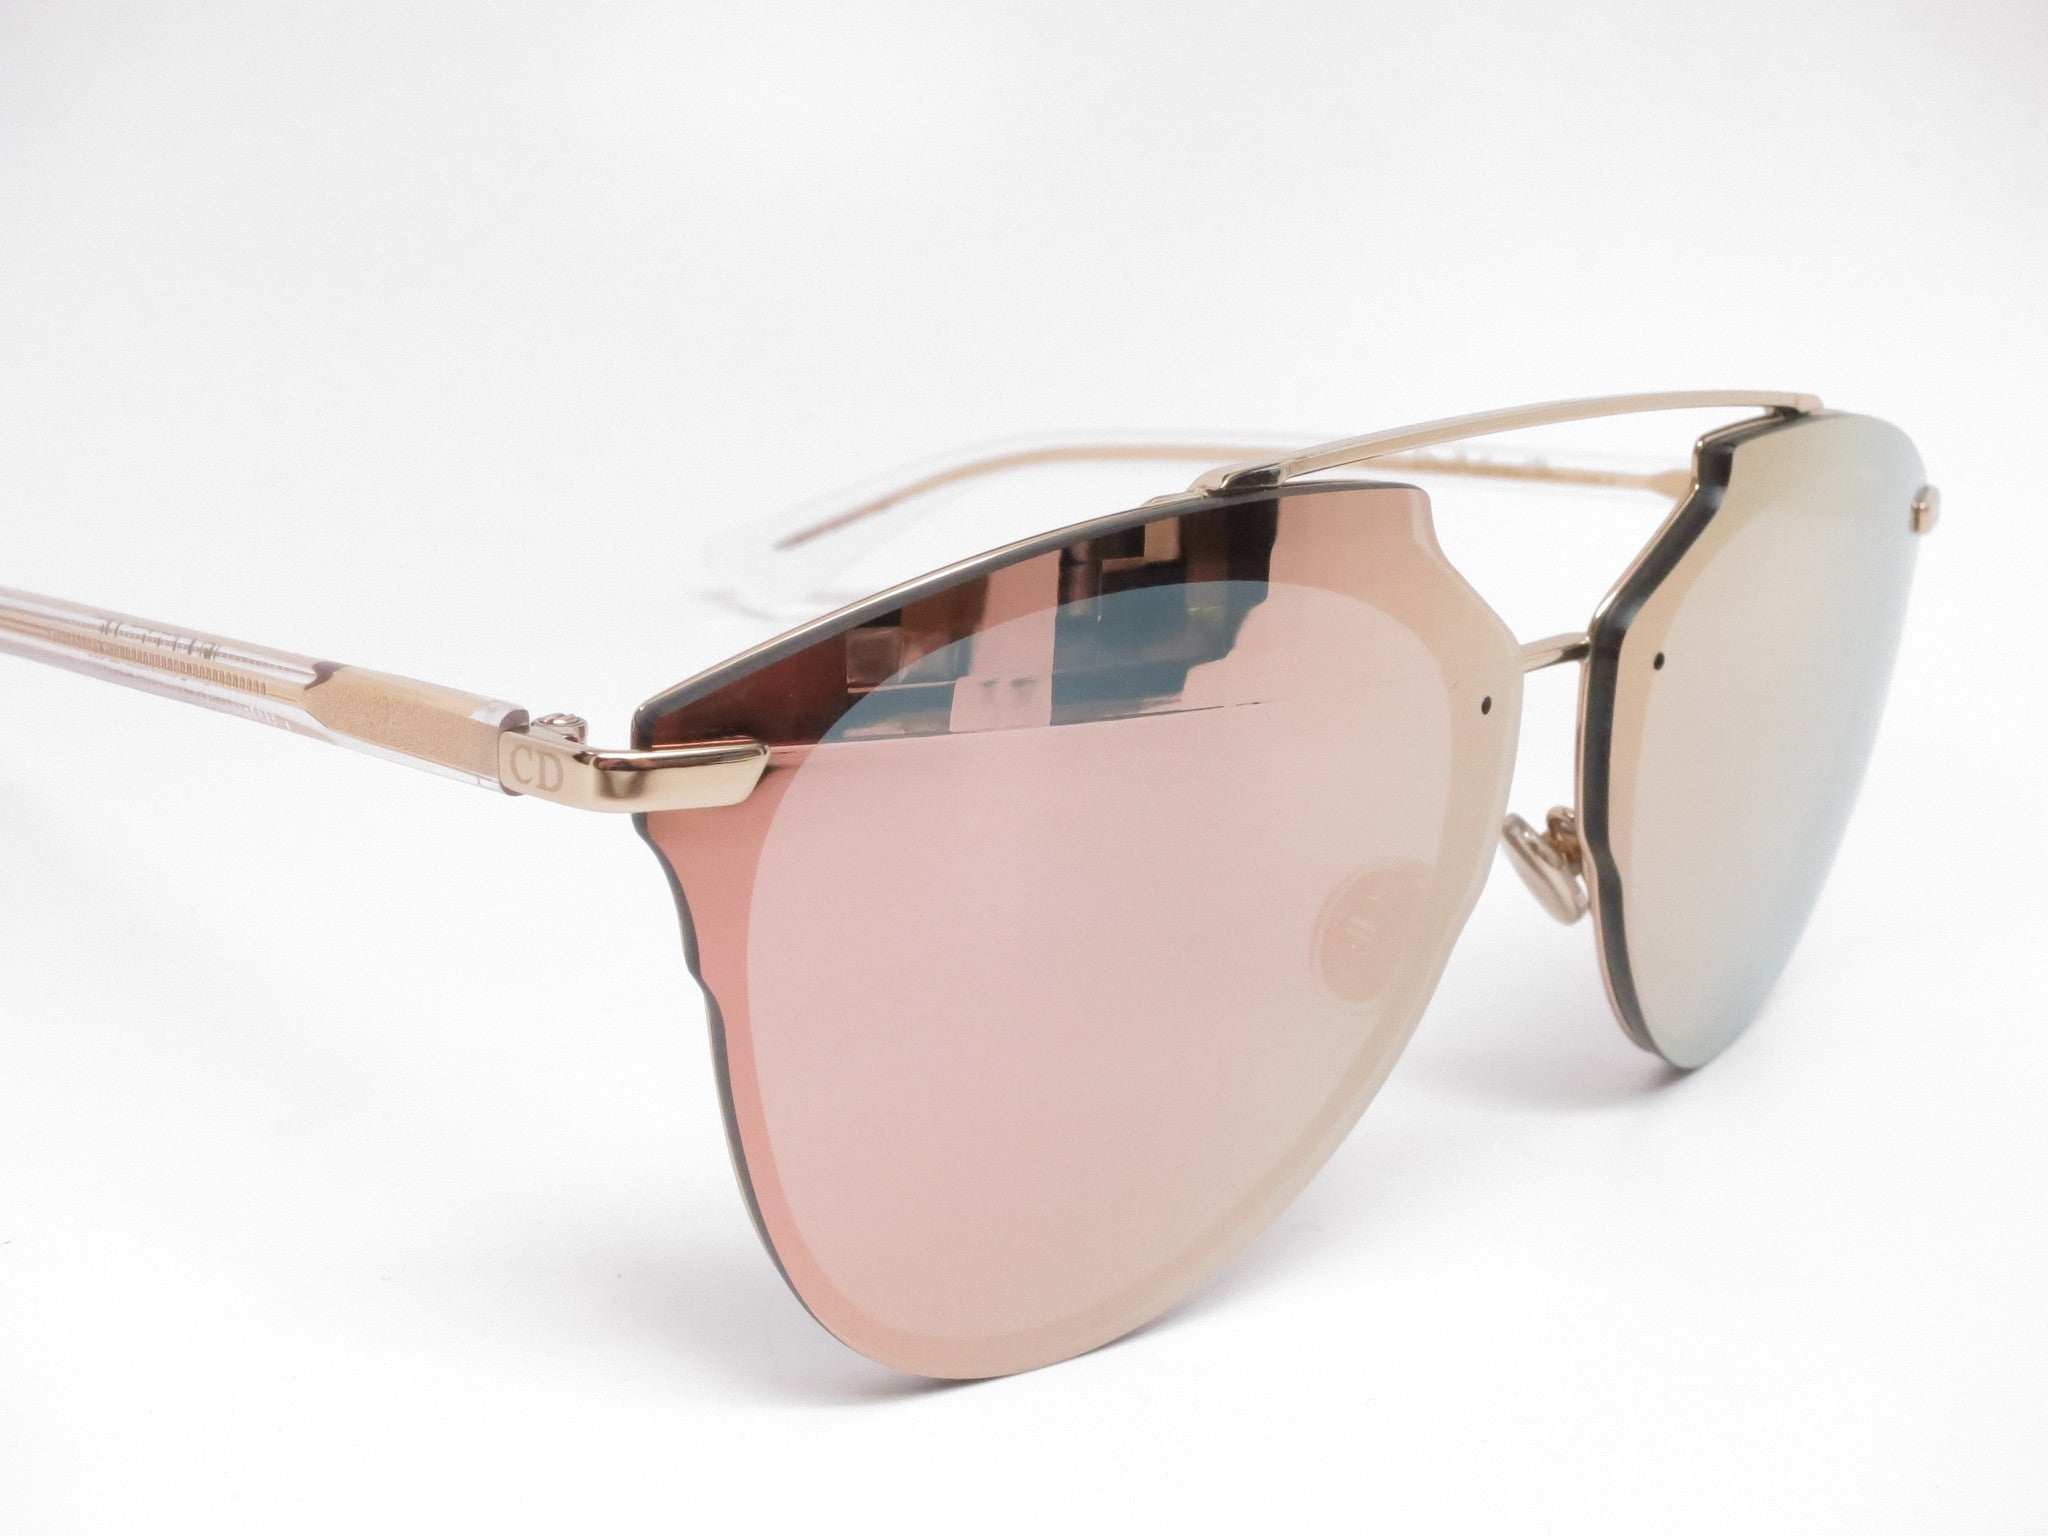 3a11bf215c Dior Reflected P S5ZRG Gold Crystal Pixel Mirrored Sunglasses - Eye ...